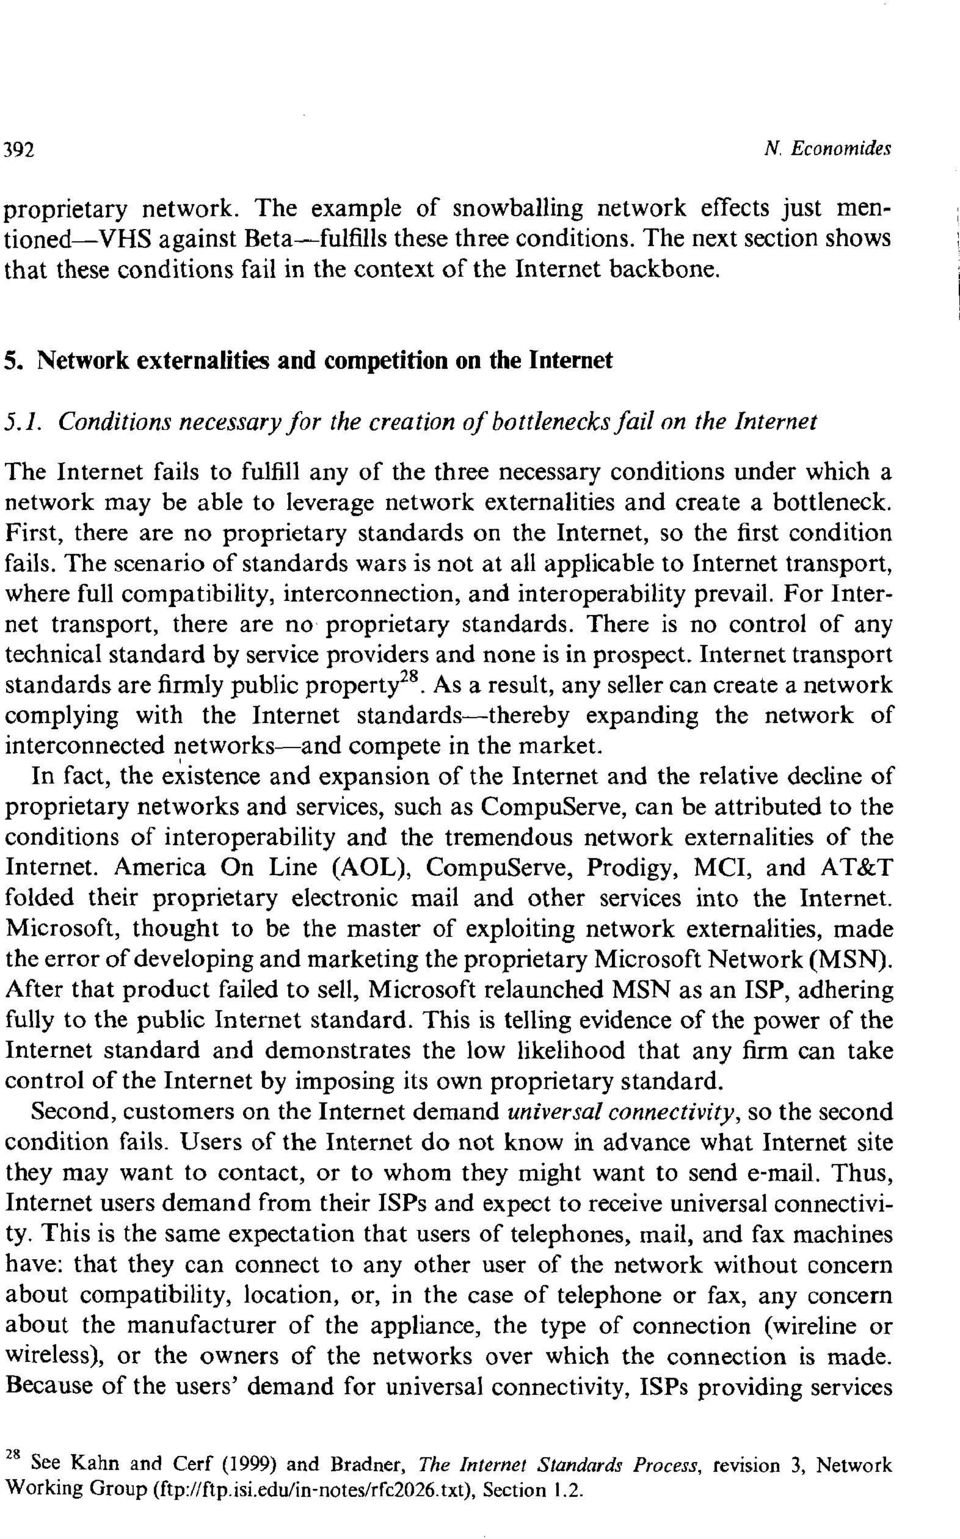 Conditions necessary for the creation of bottlenecks fail on the Internet The Internet fails to fulfill any of the three necessary conditions under which a network may be able to leverage network